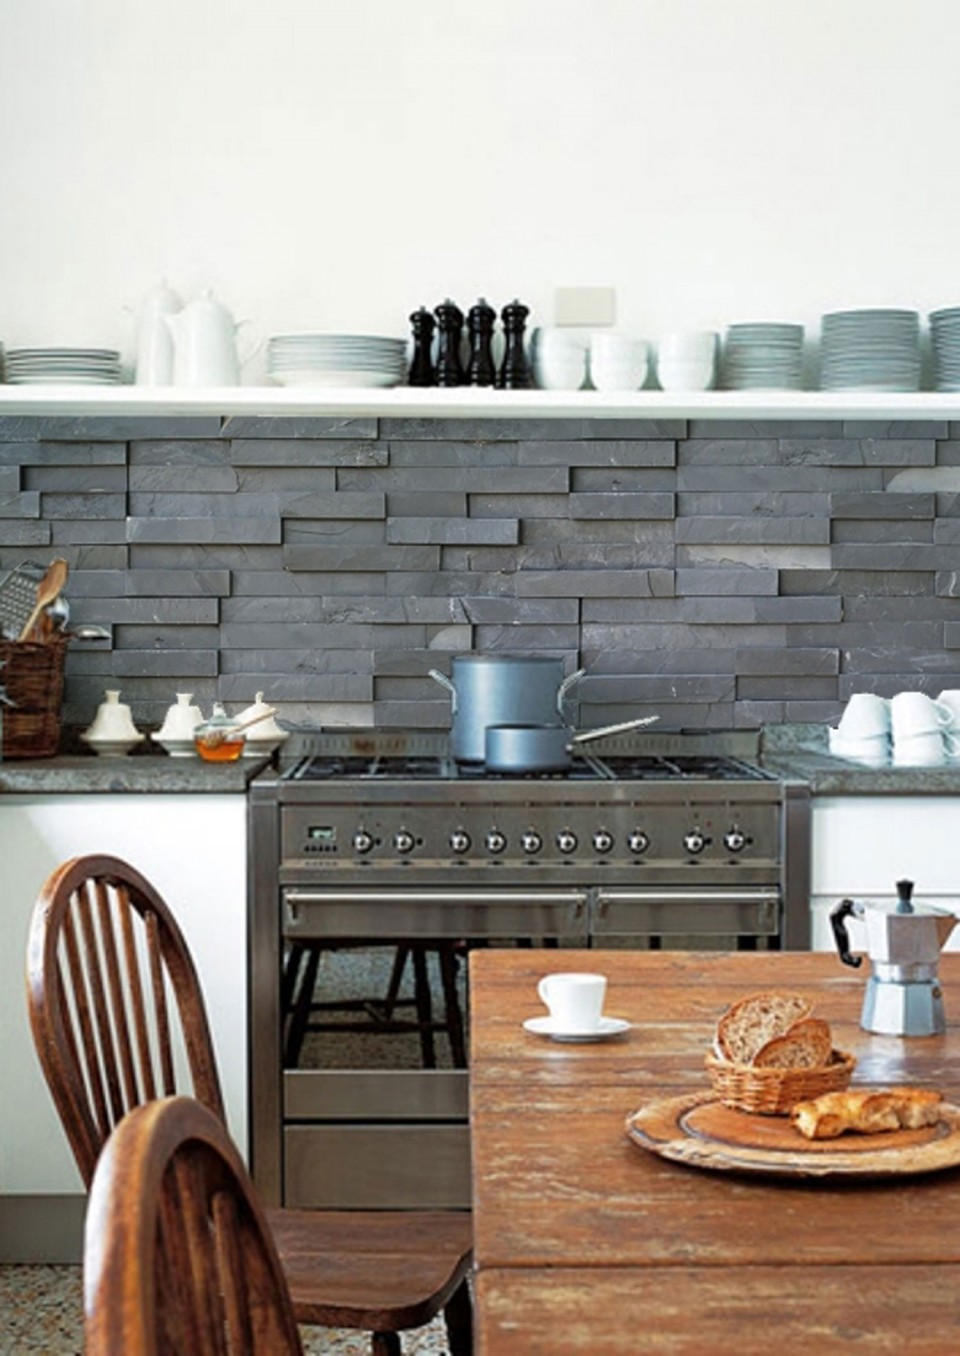 Can you believe this slate effect kitchen splashback is actually wallpaper? It looks so much like slate tiles!